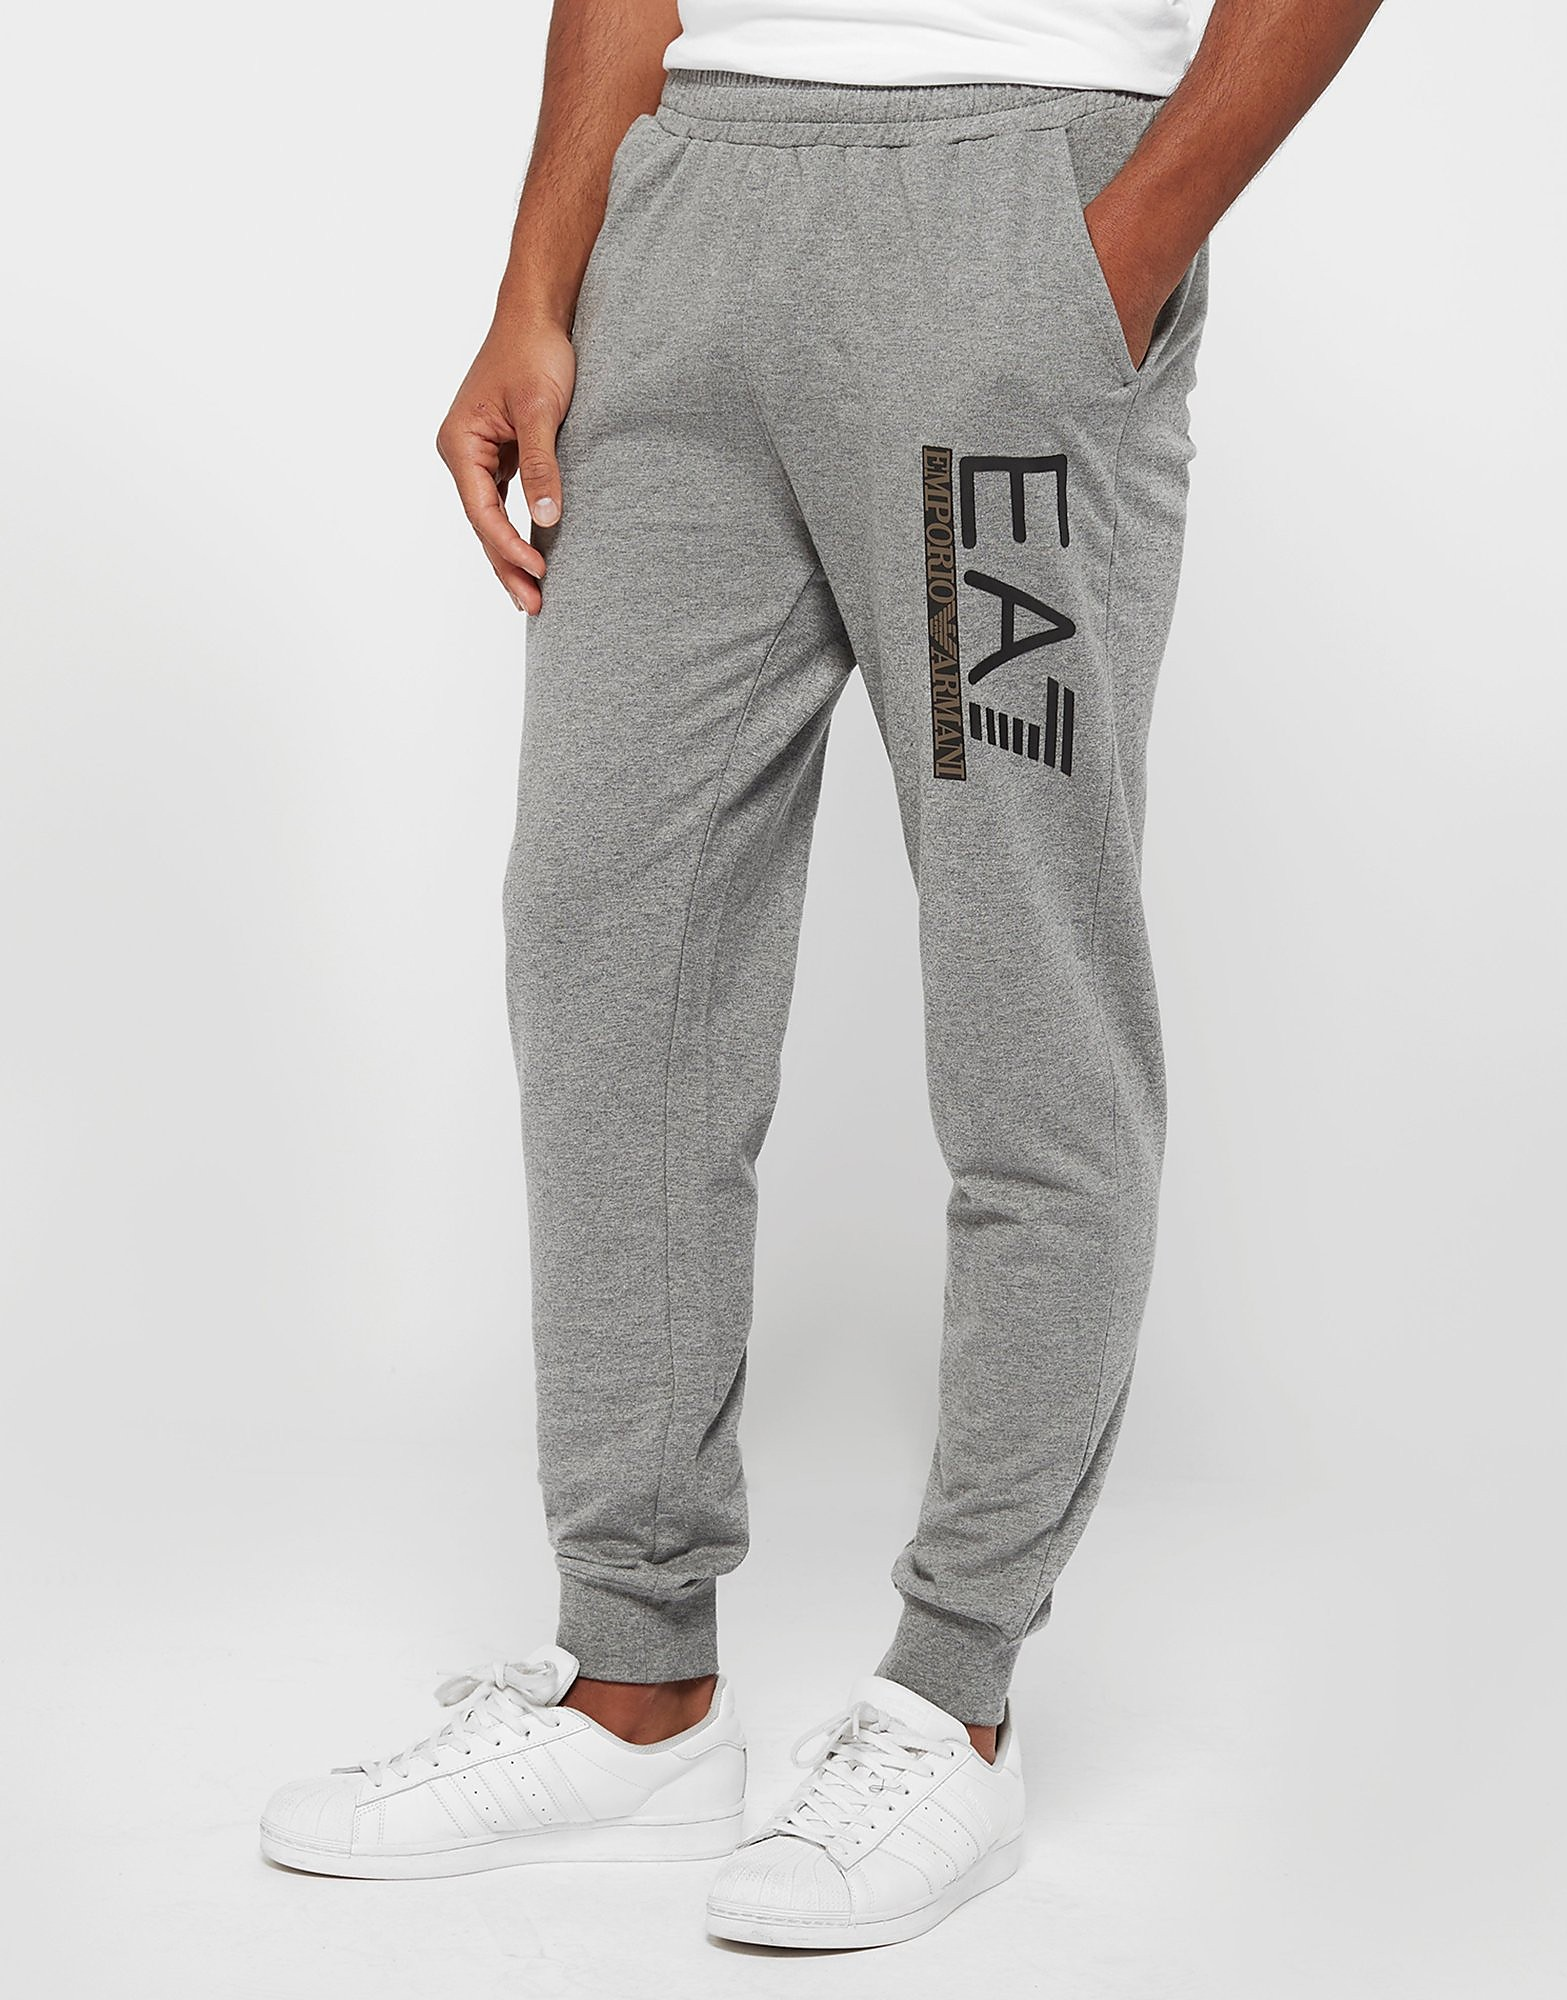 Emporio Armani EA7 Fleece Cuff Pants